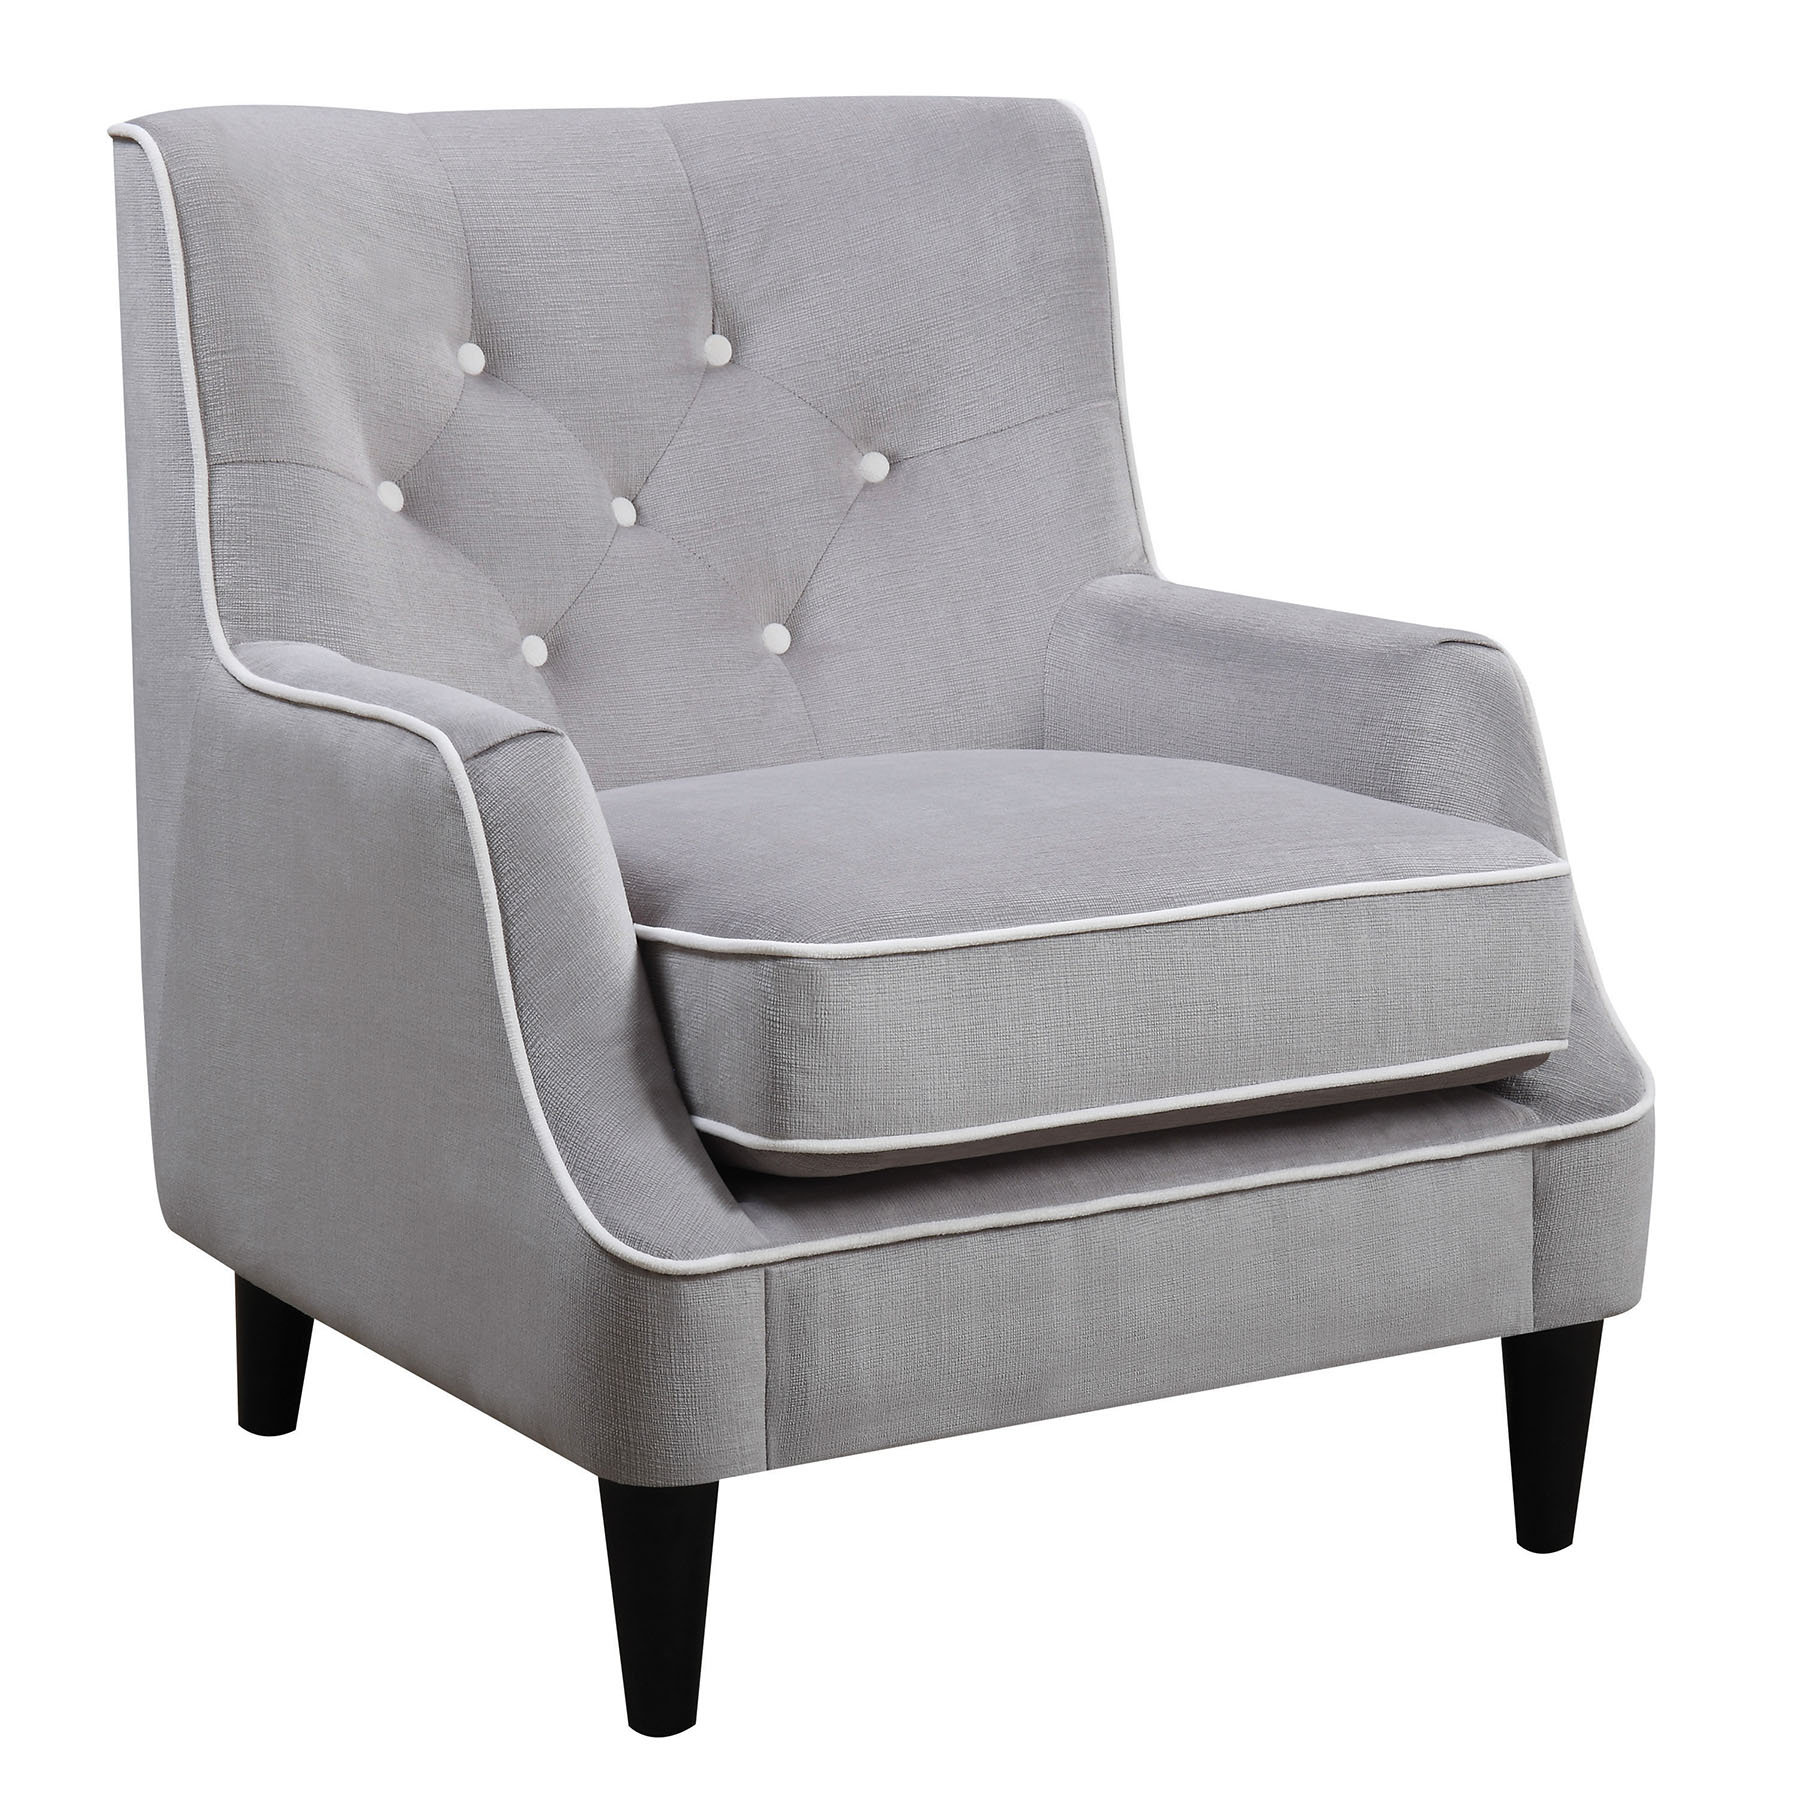 Donny Osmond Home 902894 Grey And White Fabric Accent Chair